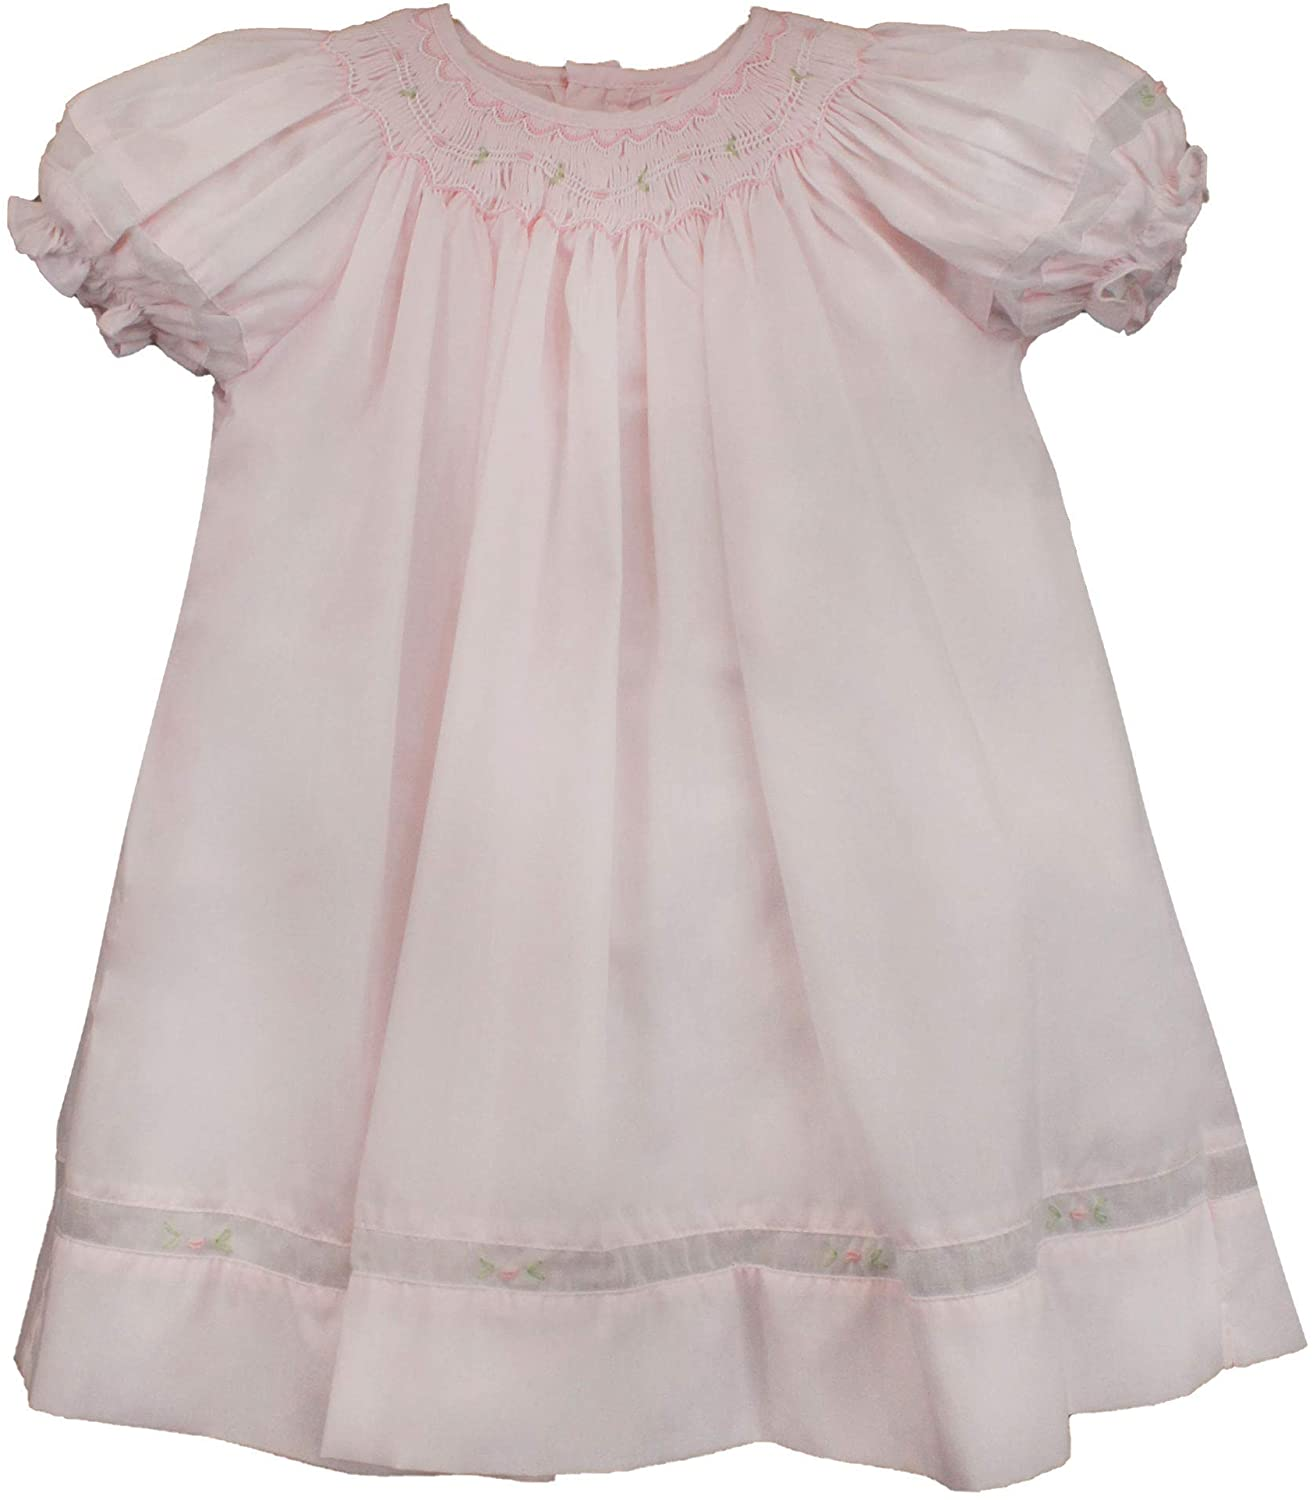 Petit Ami Baby Girls' Smocked Daygown with Voile Insert, 18 Months, Pink